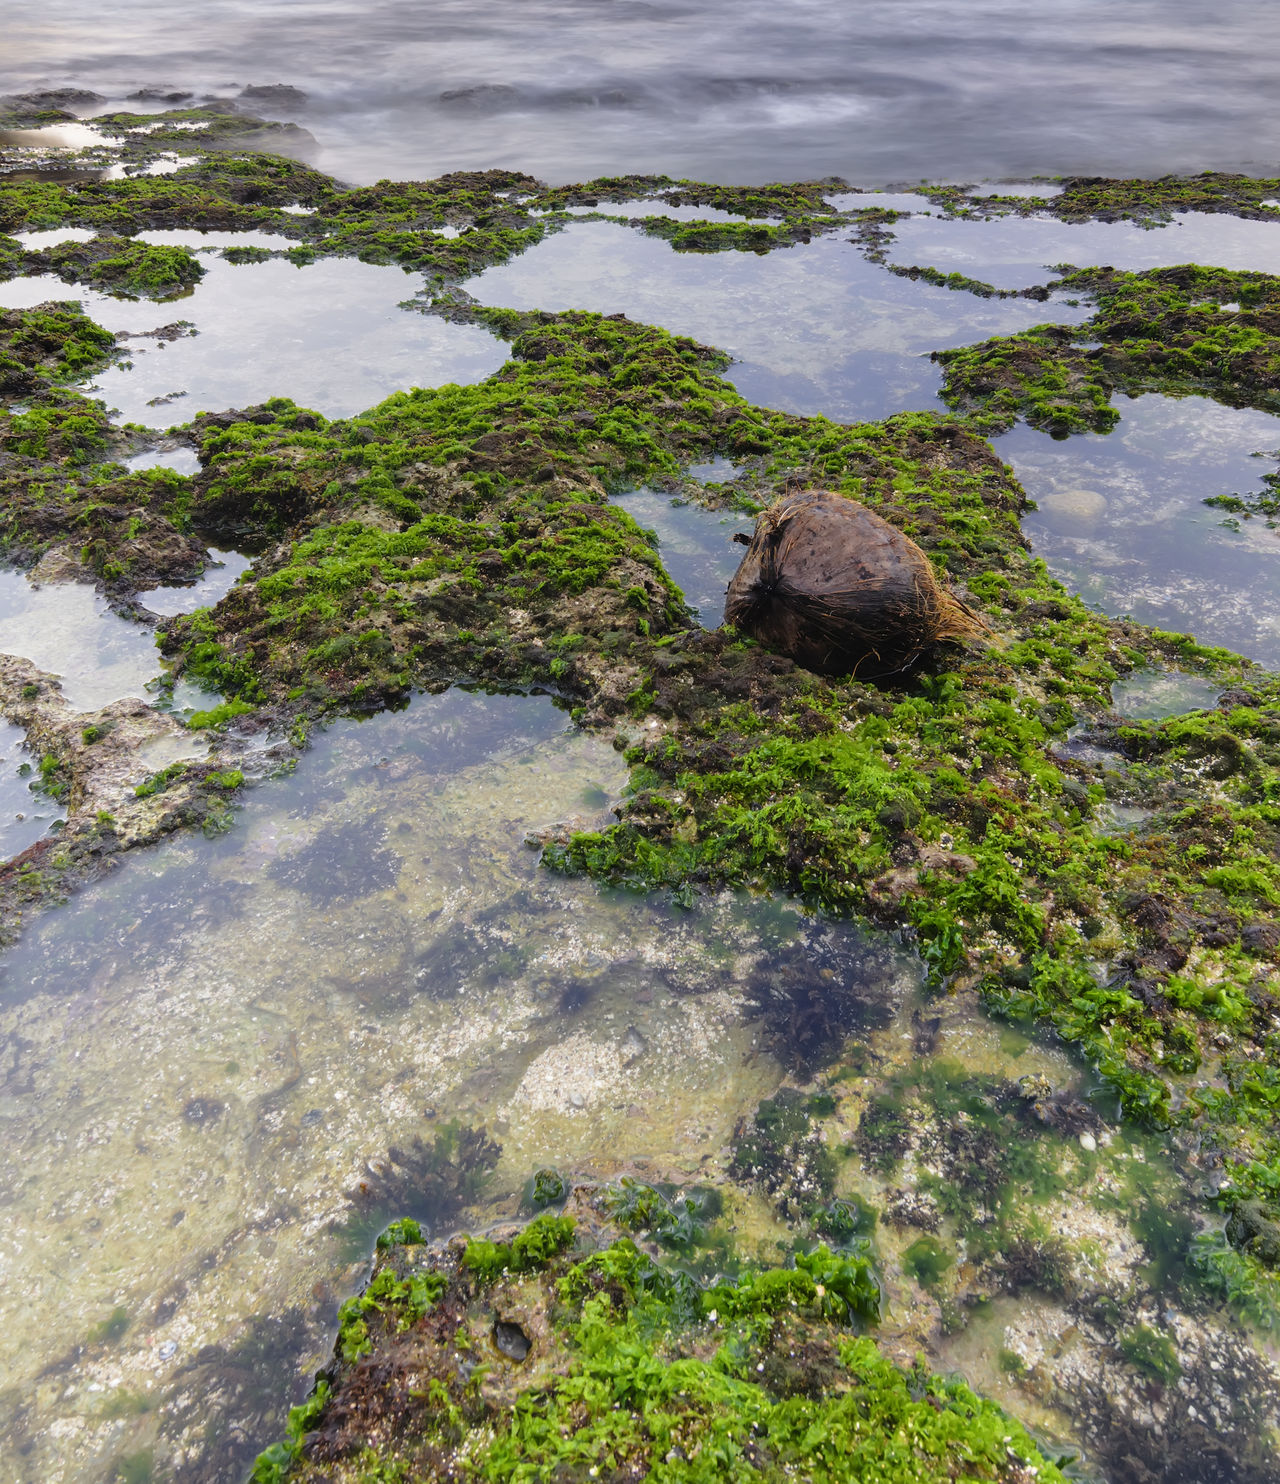 A coconut on the green nature mossy on the rocky beach during sunrise. Nature composition. Beauty In Nature Coconut Day Green Growth High Angle View Mossy Beach Nature No People Outdoors Rocky Beach Scenics Tranquility Water